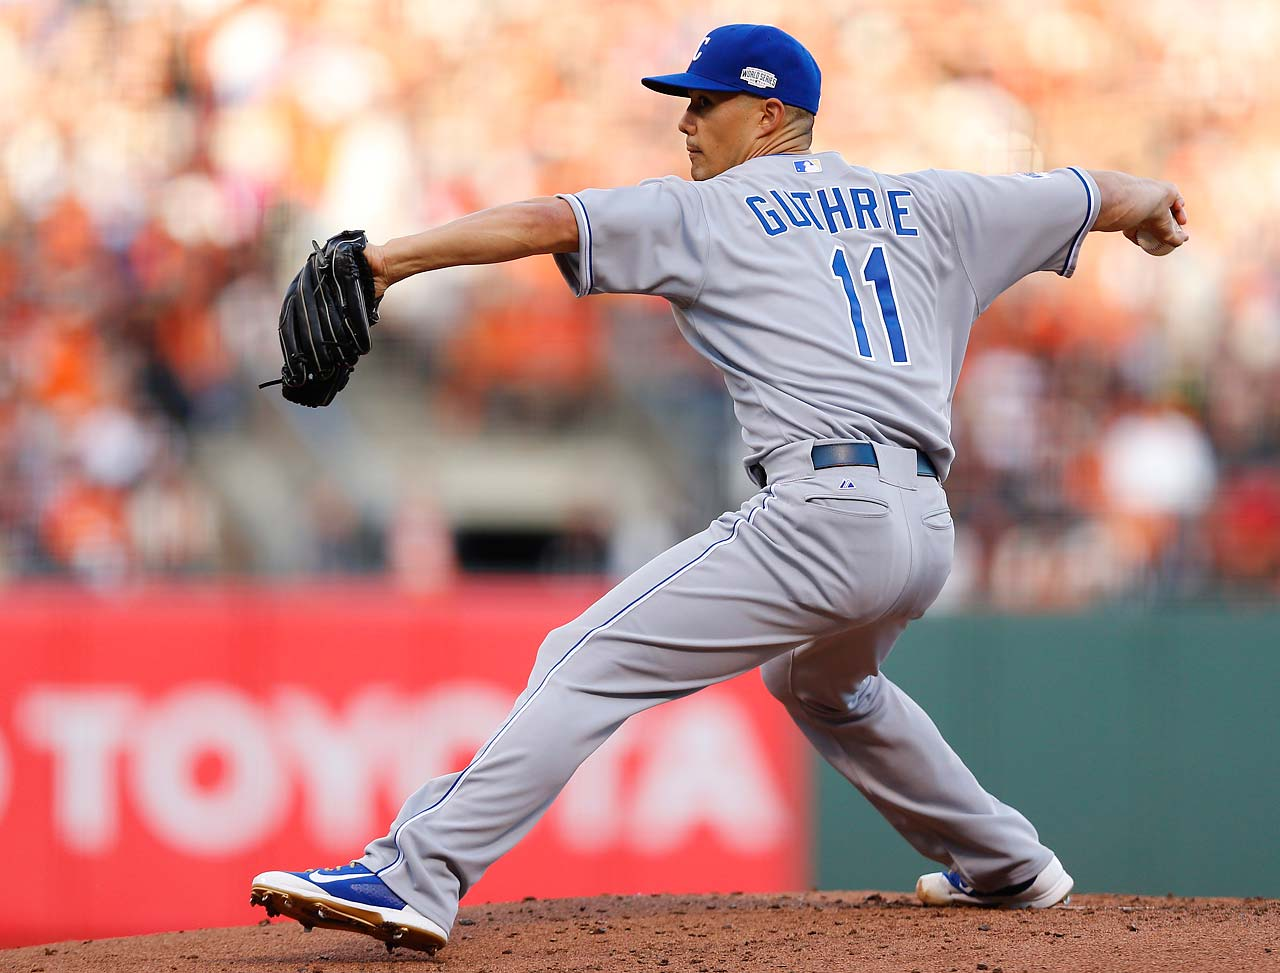 Jeremy Guthrie threw five-plus innings of four-hit ball and got the win.